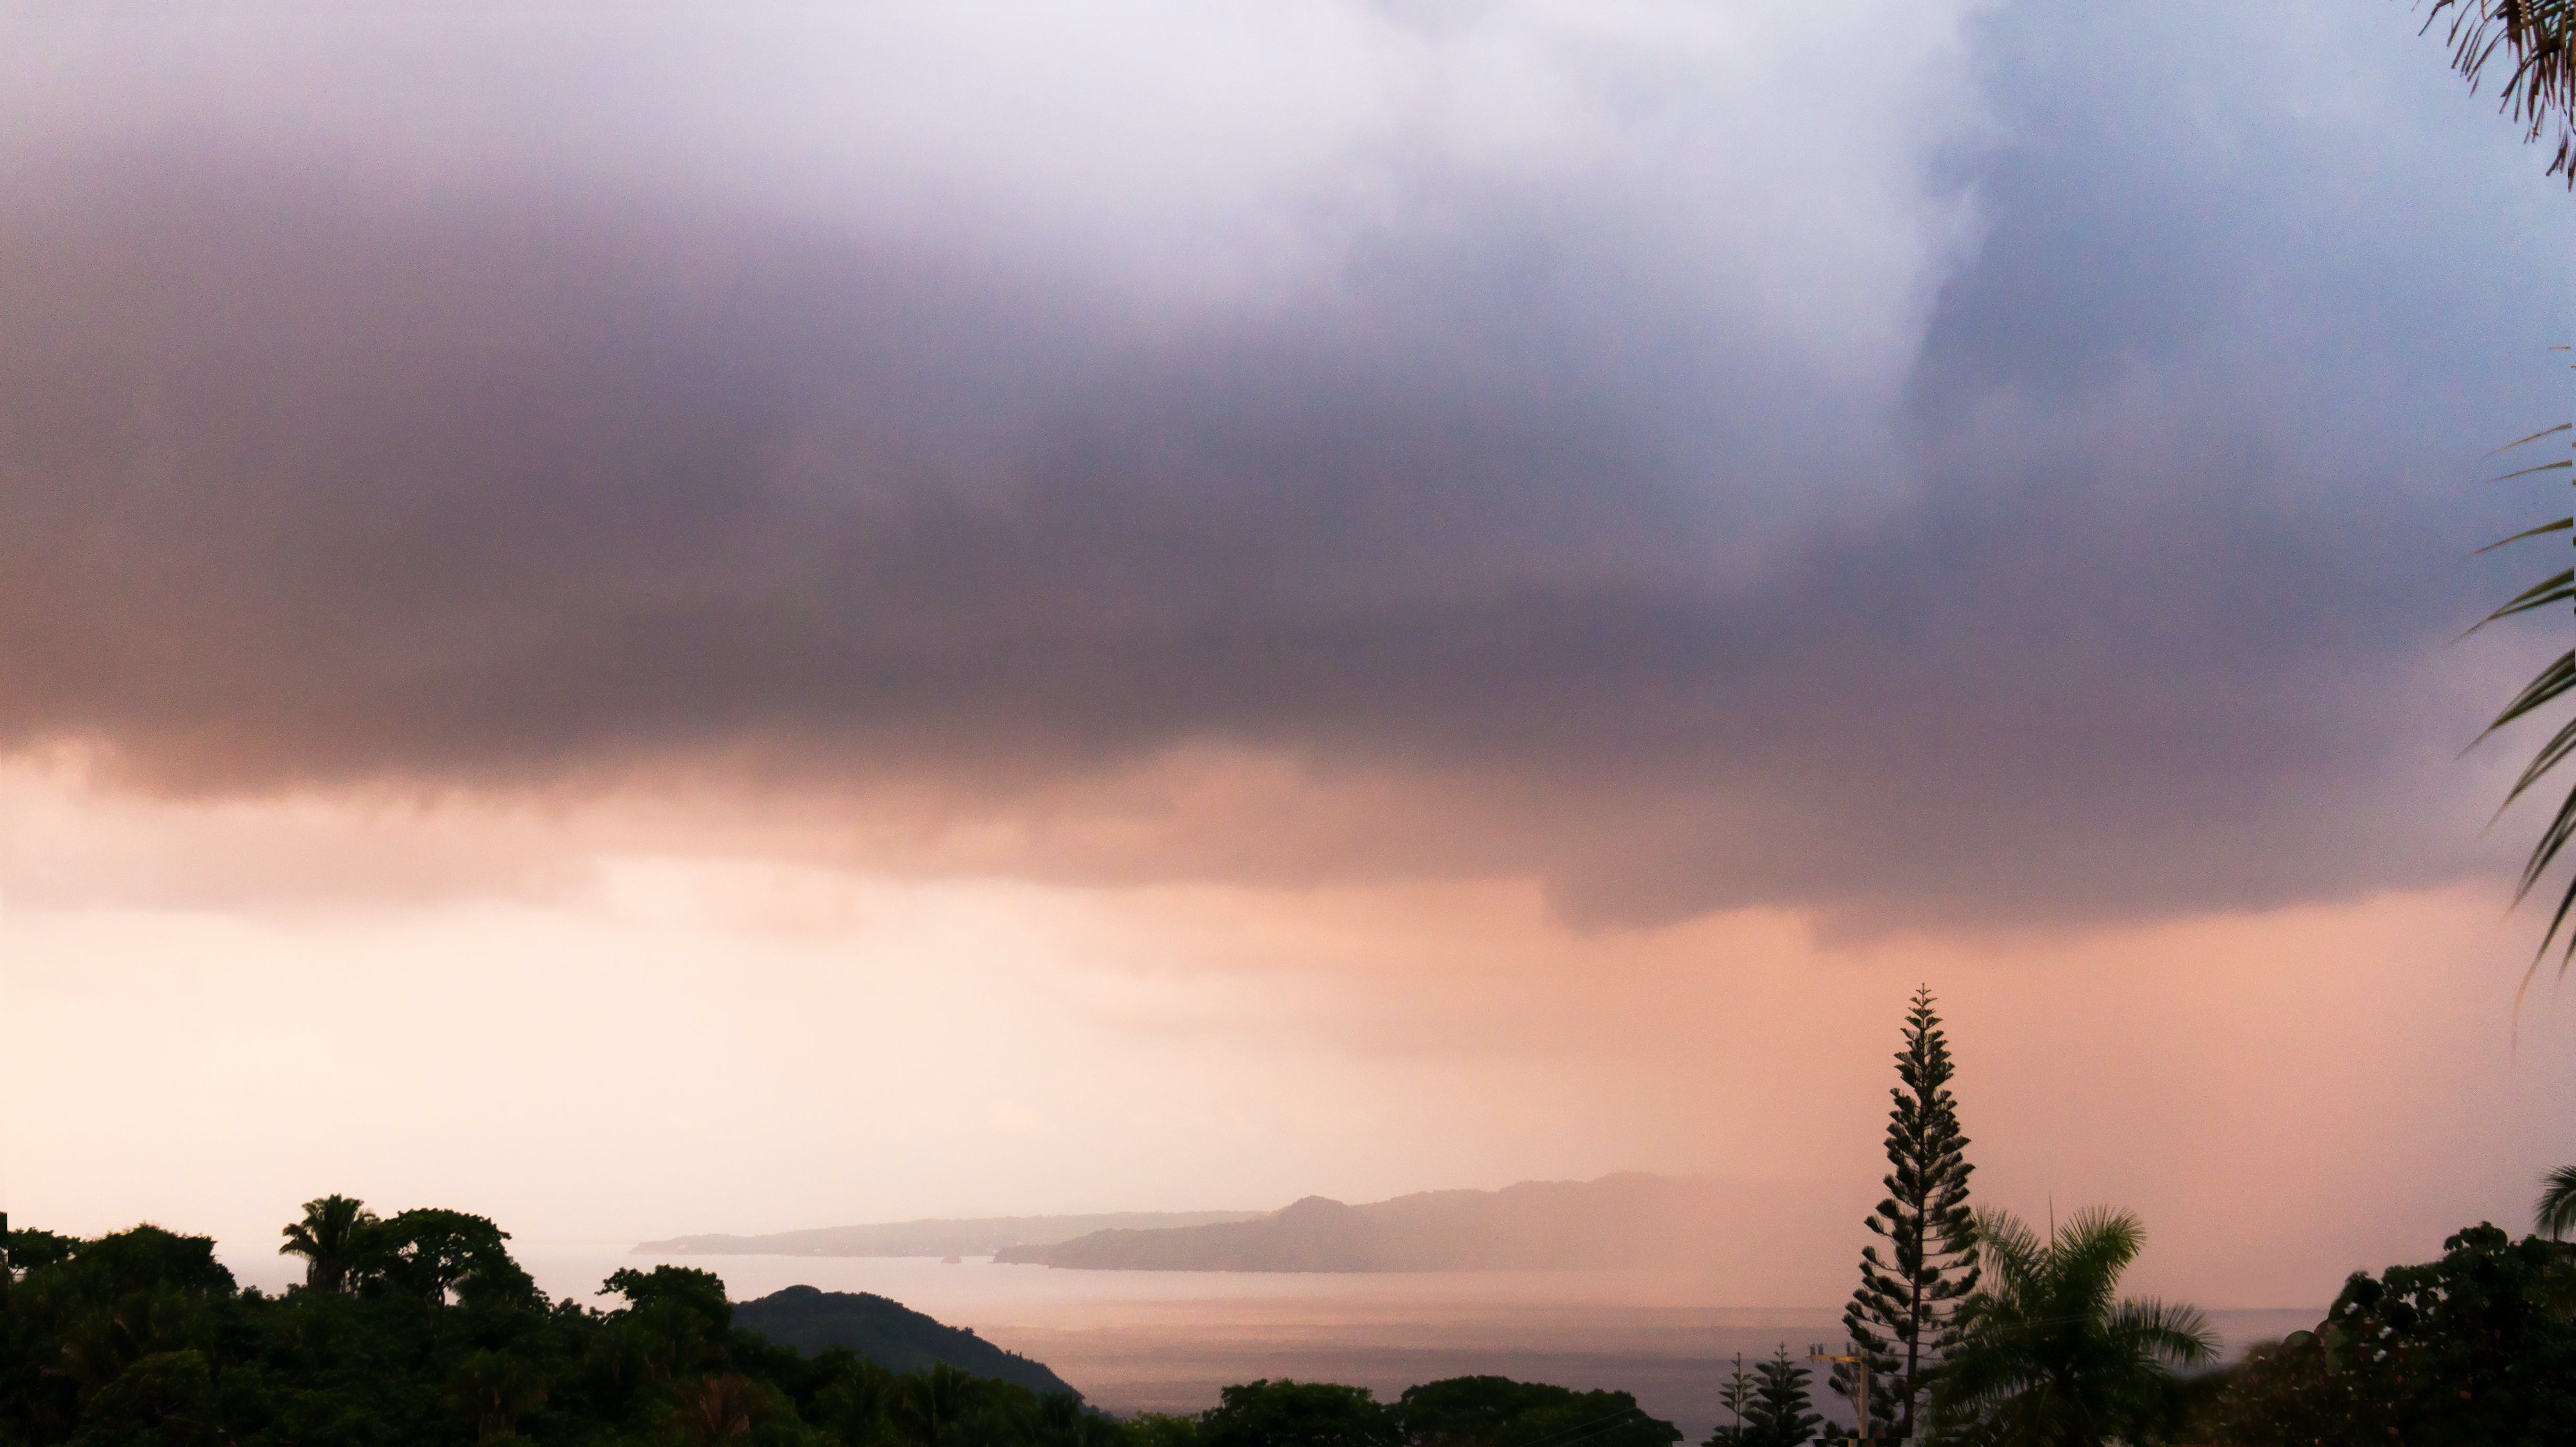 Free stock photo of bad weather, clouds, dark clouds, distant